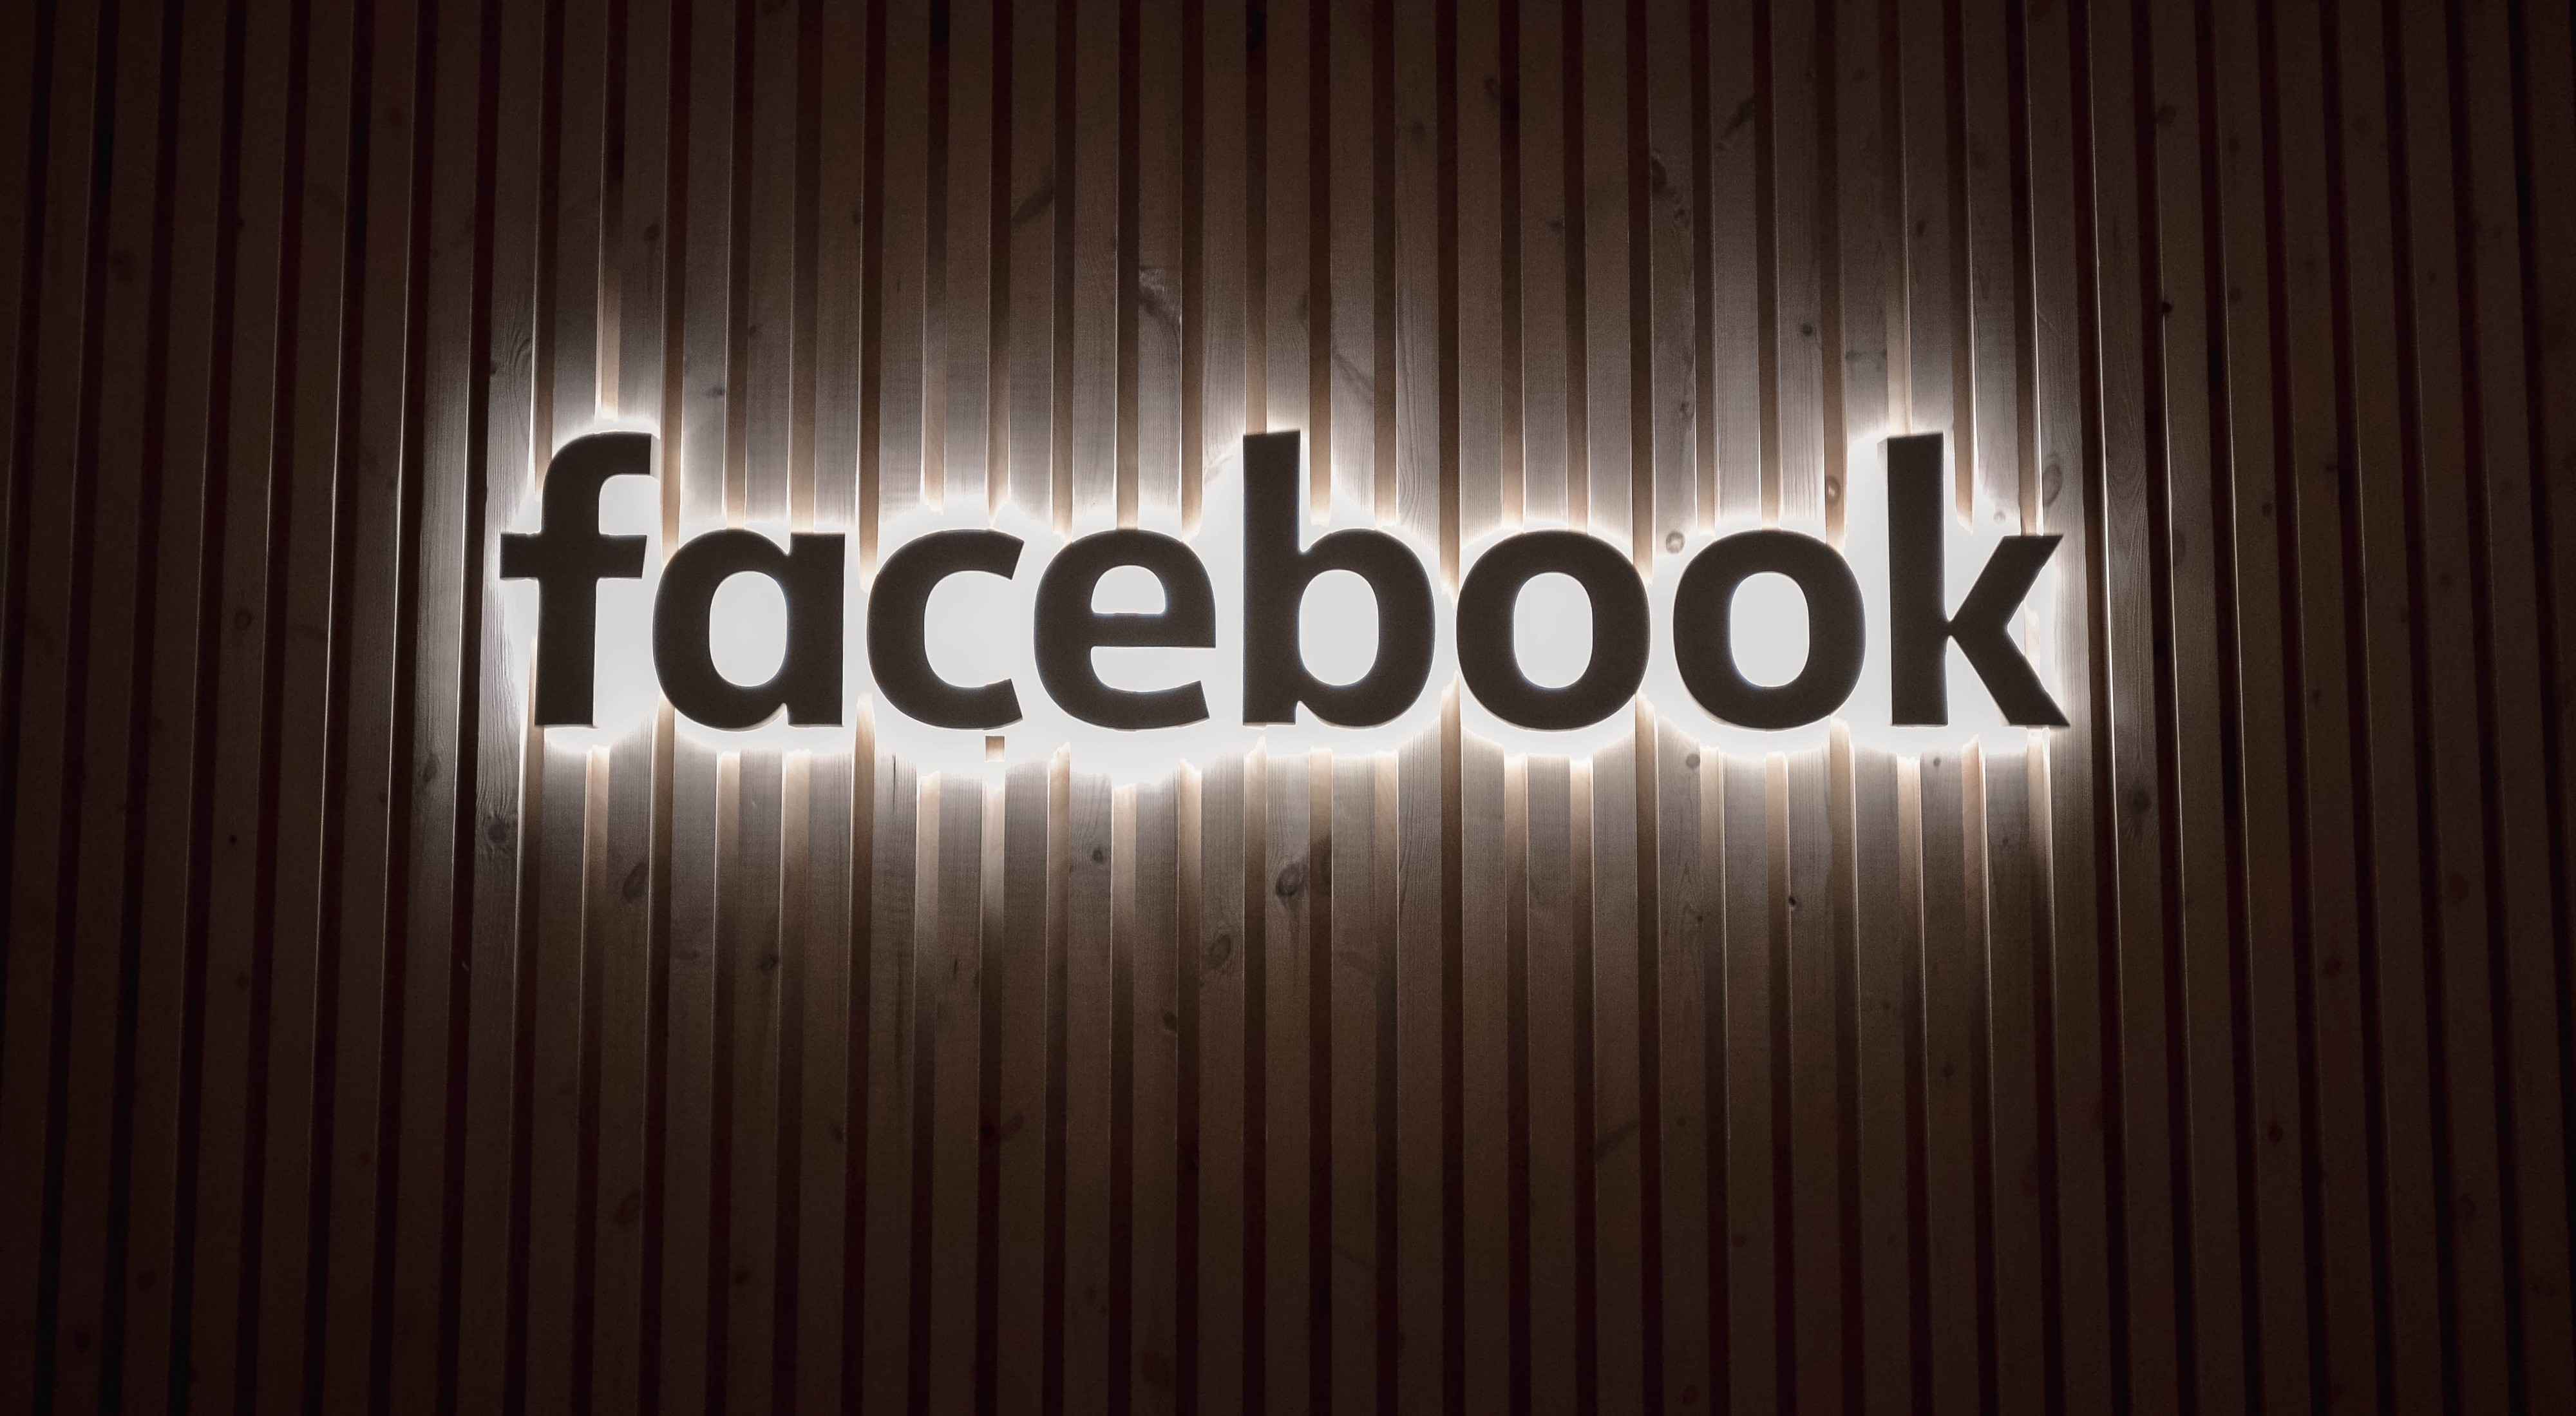 Photo with the word Facebook as a sign wrote in the colour black with white lighting behind it